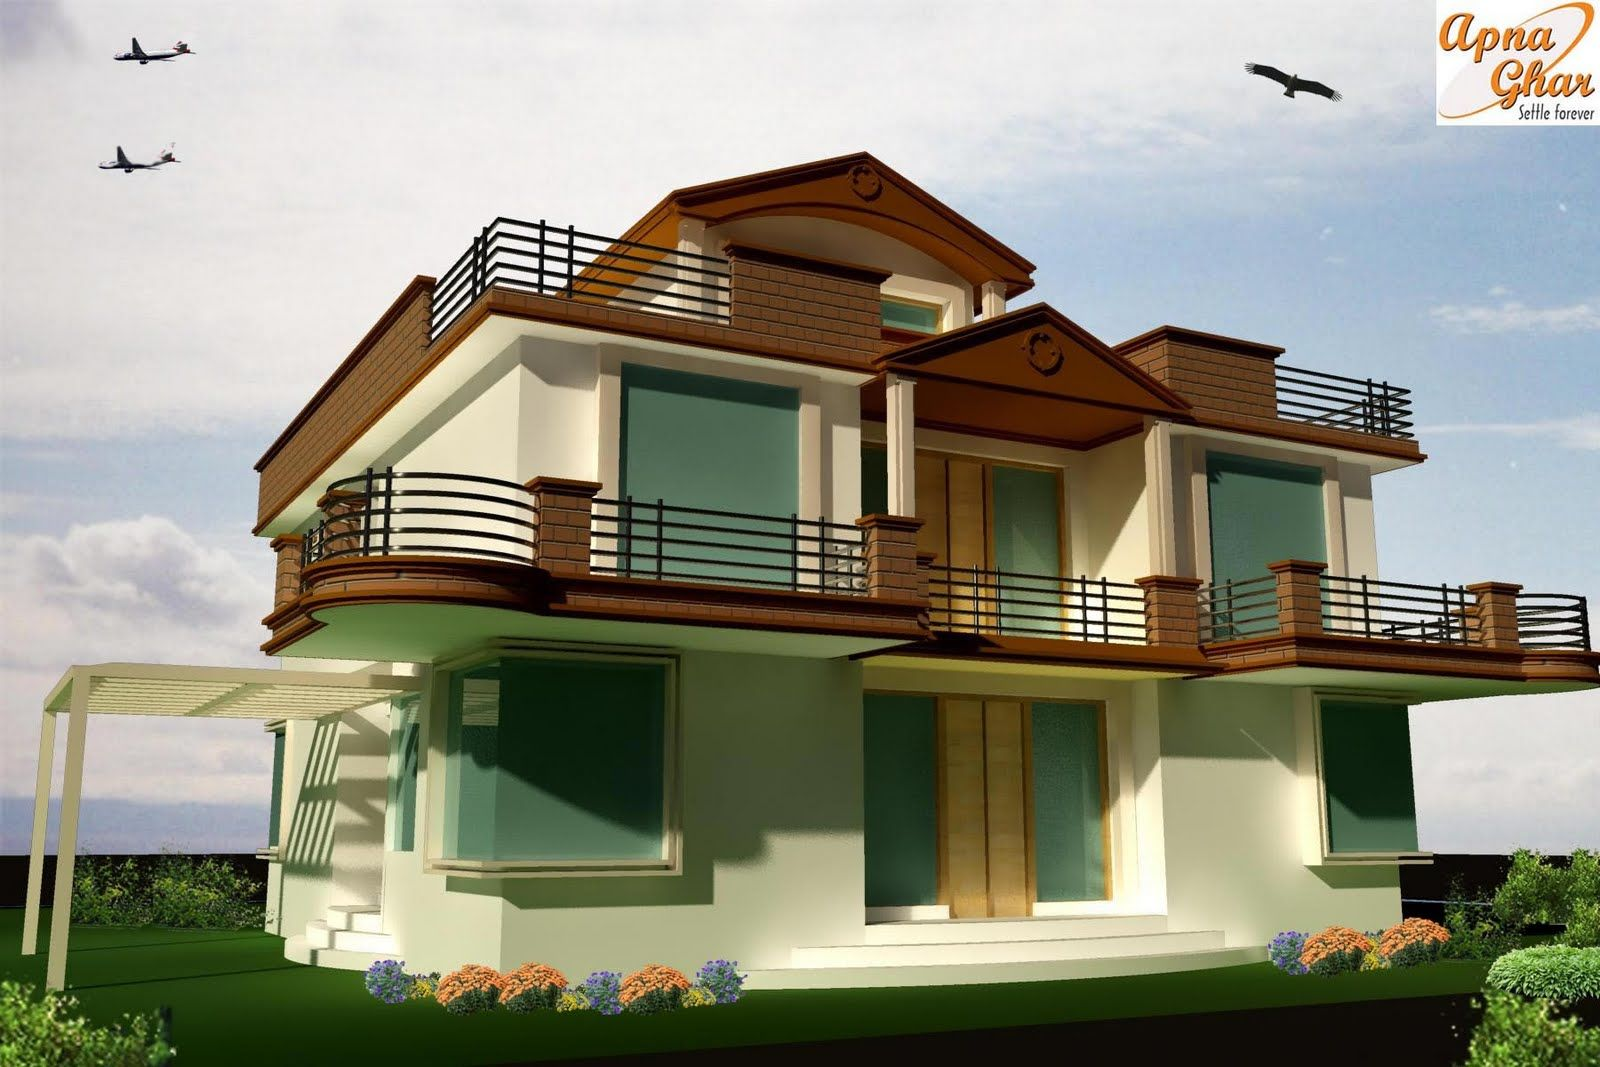 Architectural designs modern architectural house plans for Architectural home plans